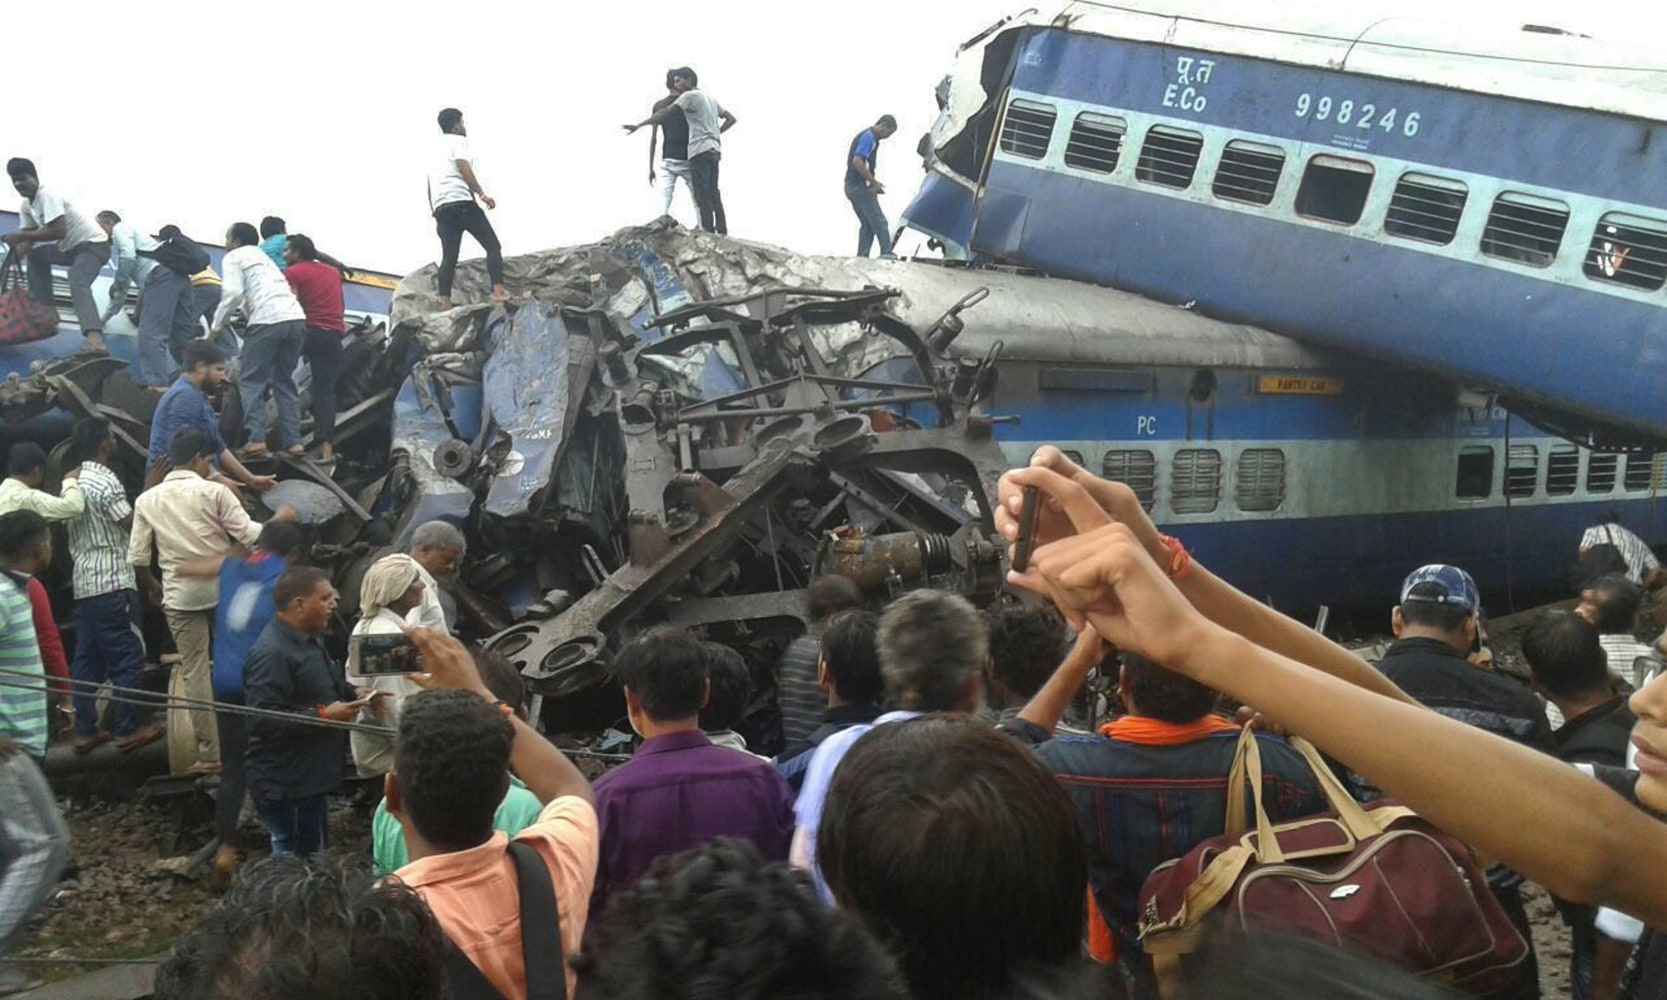 Train derailment in India kills more than 20